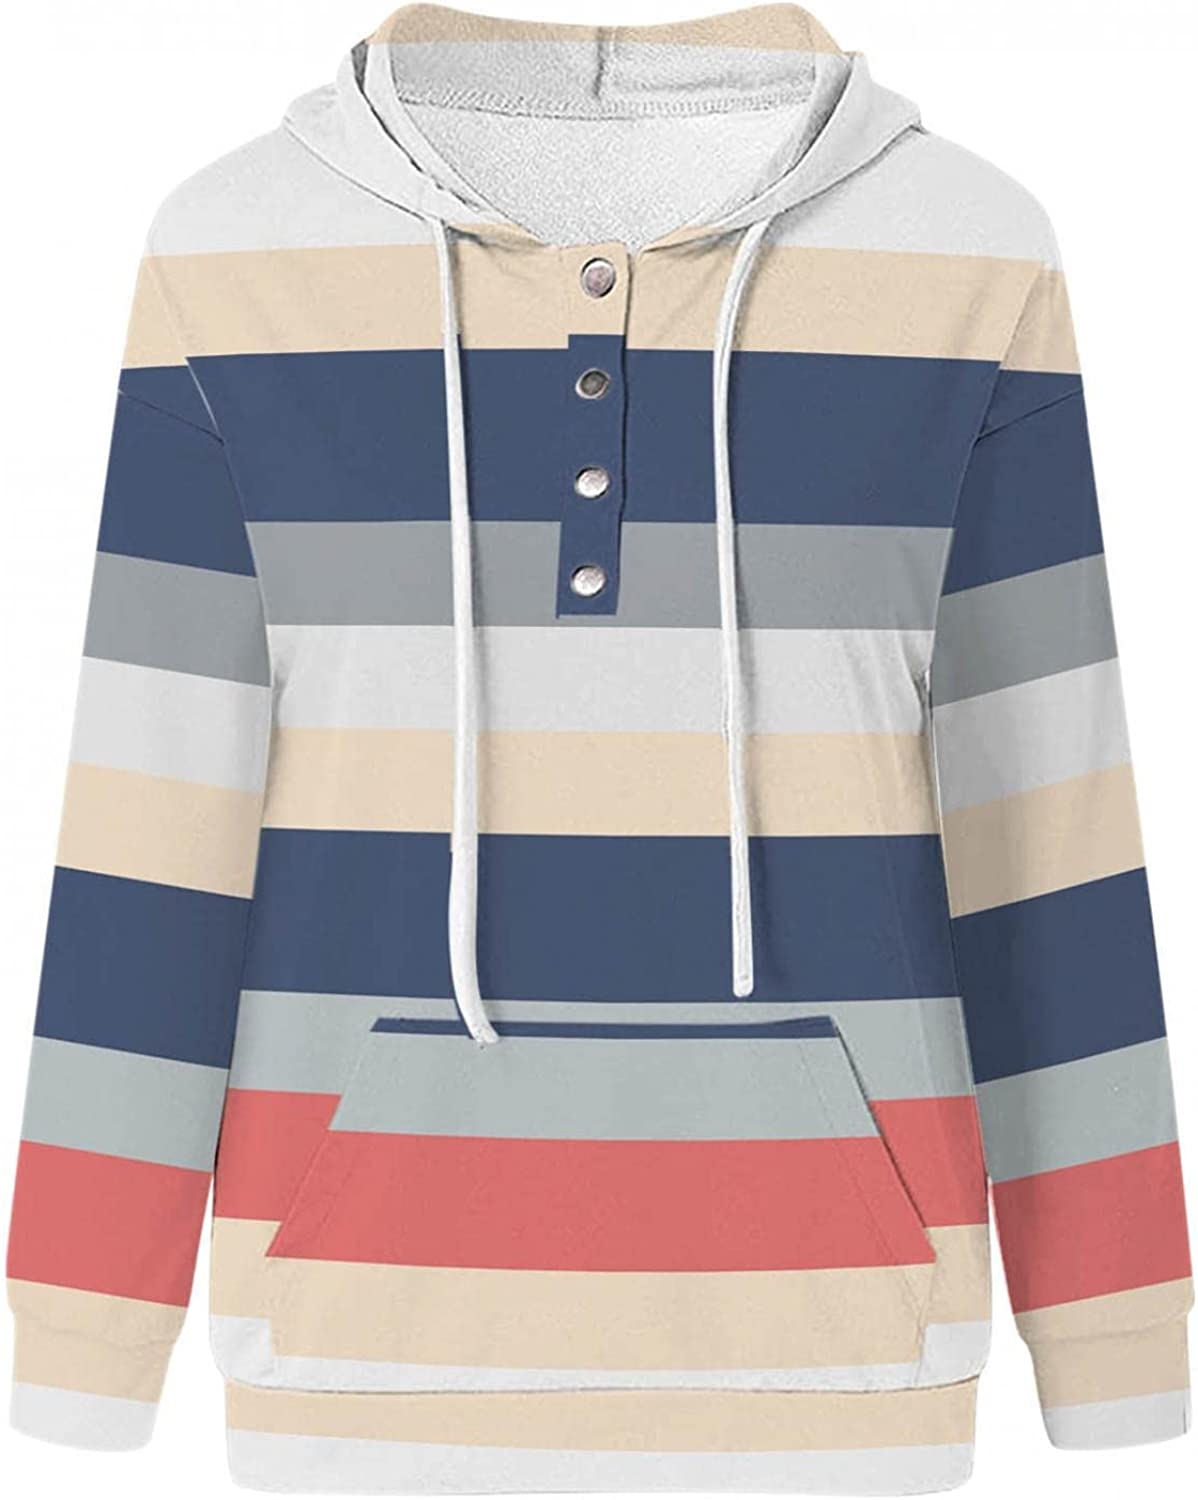 COMVALUE Womens Hoodies,Drawstring Pullover Striped Long Sleeve Button Down Casual Sweatshirts with Pocket